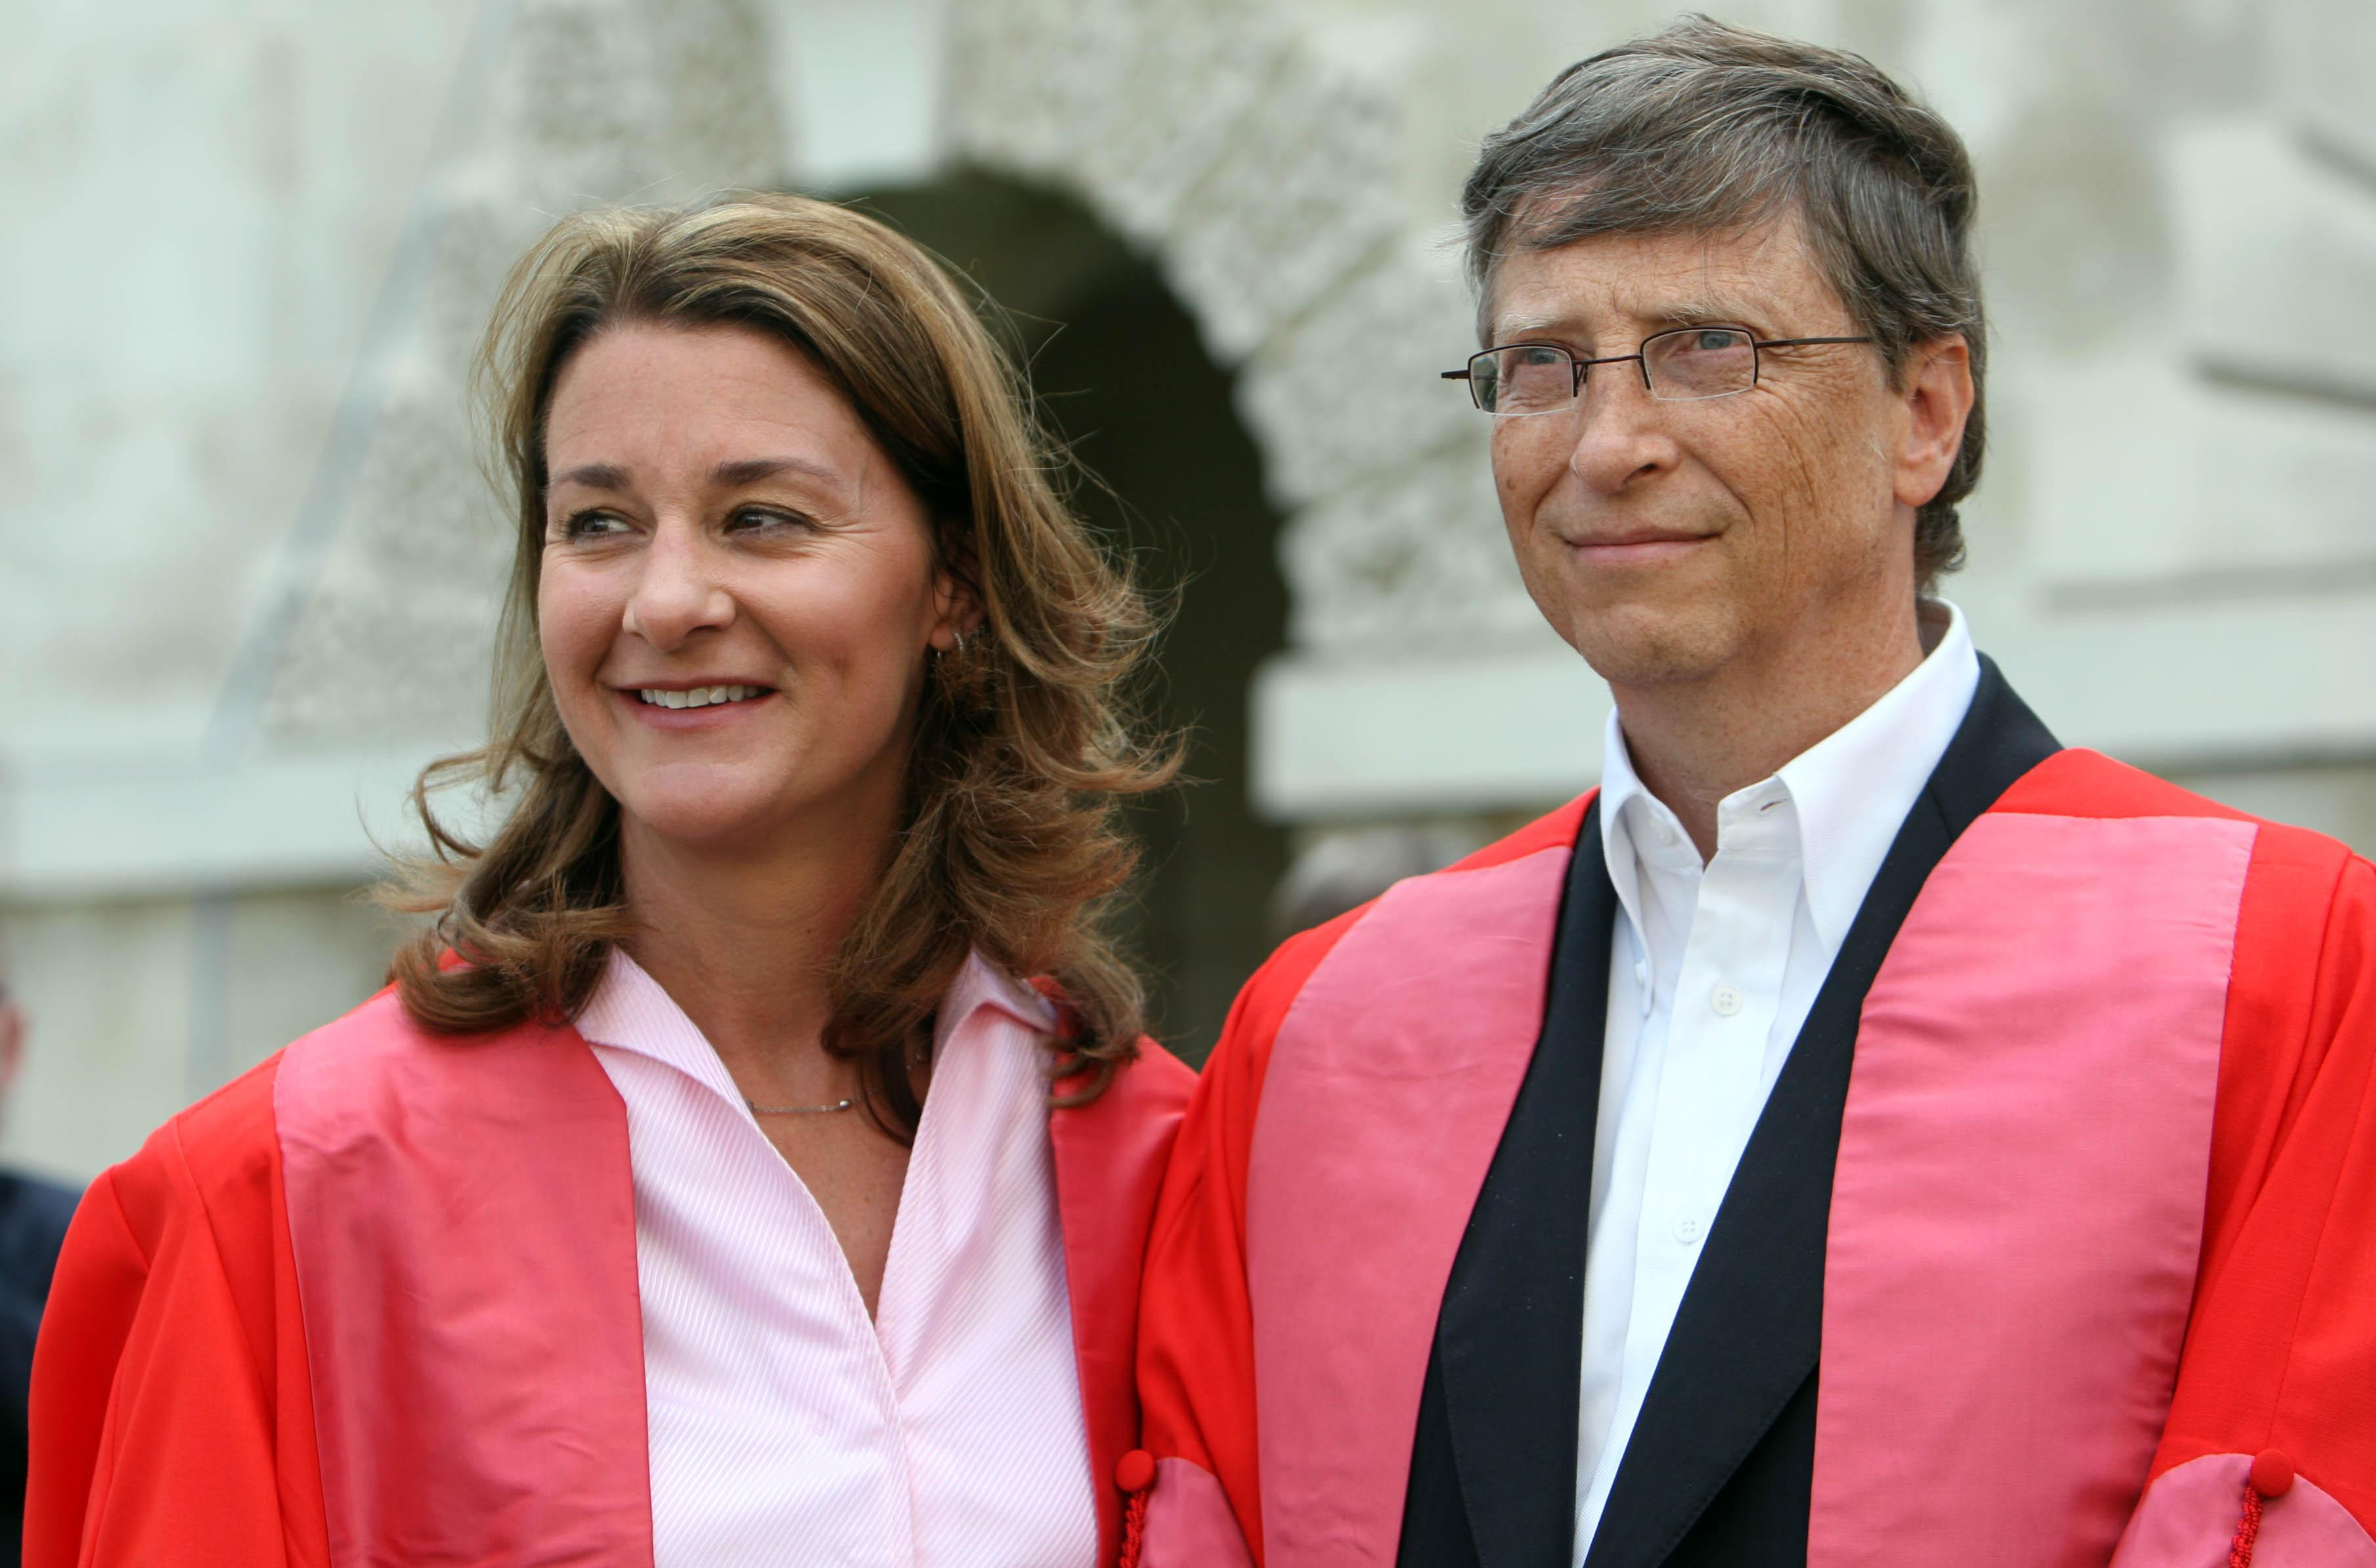 Cambridge University awards honorary Doctorates